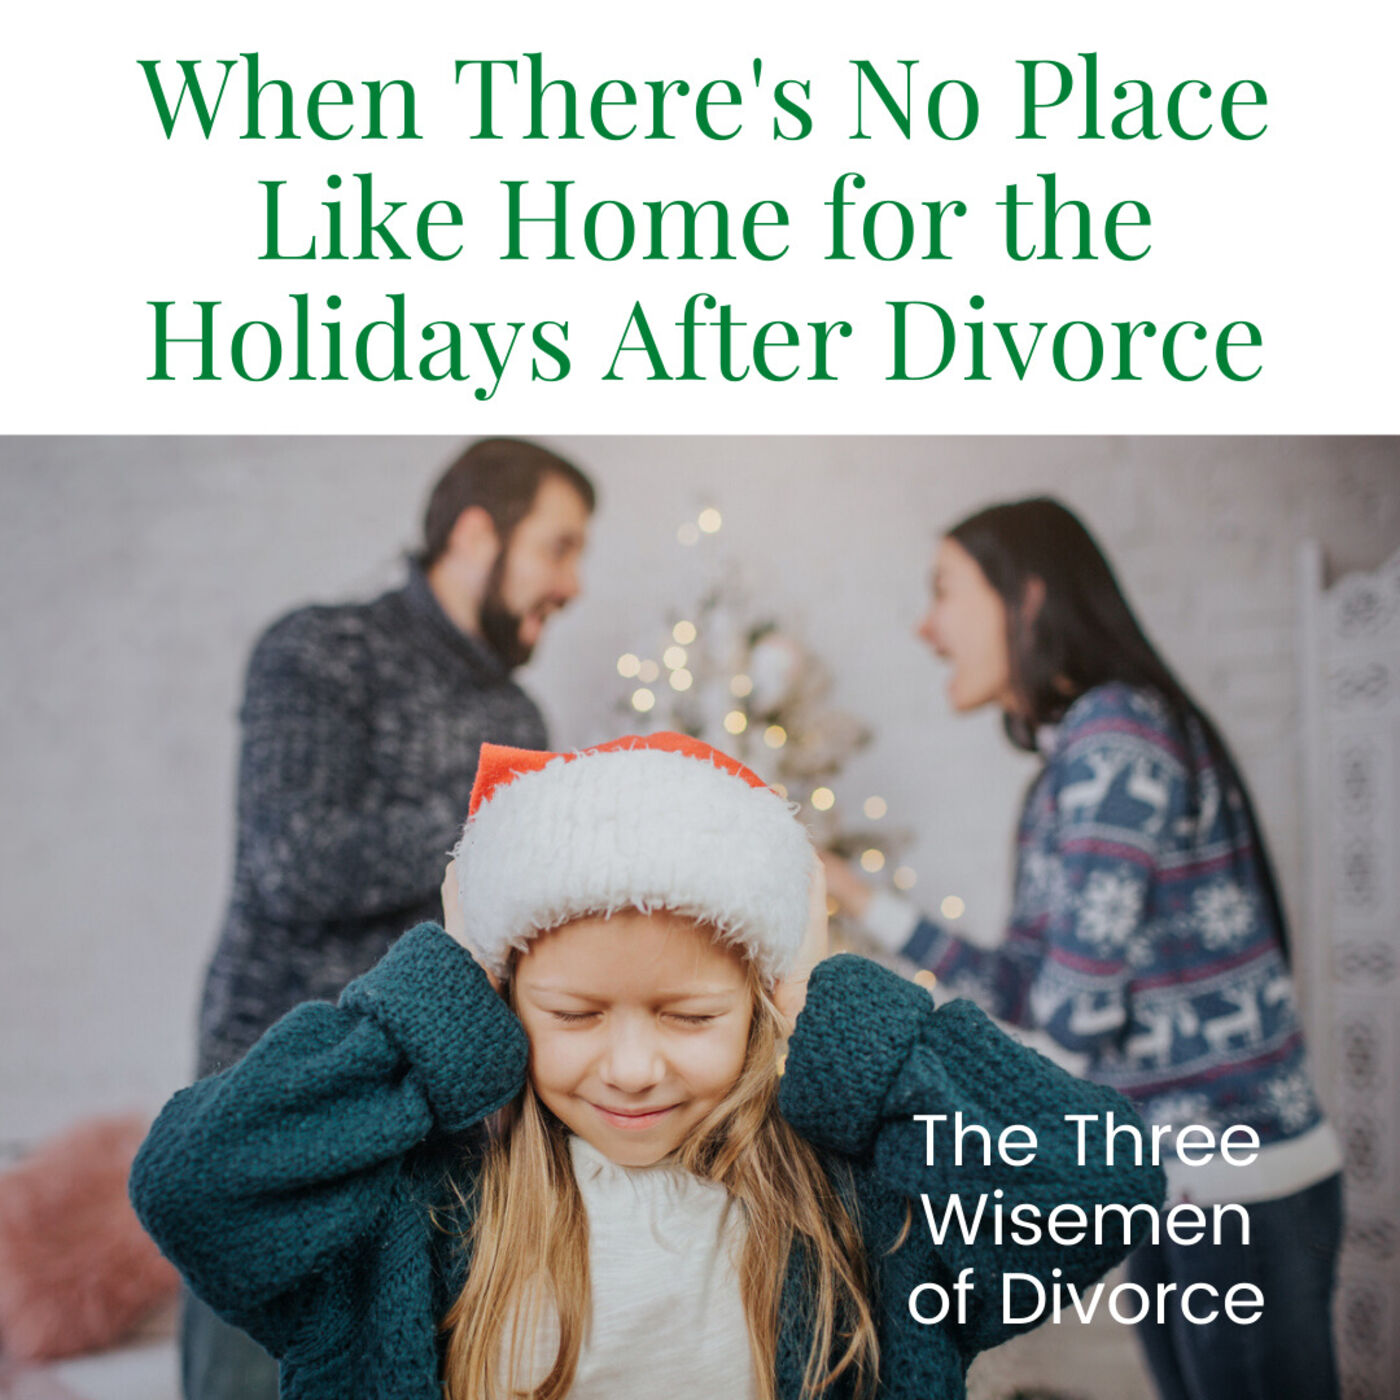 When There's No Place Like Home for the Holidays (After the Divorce)